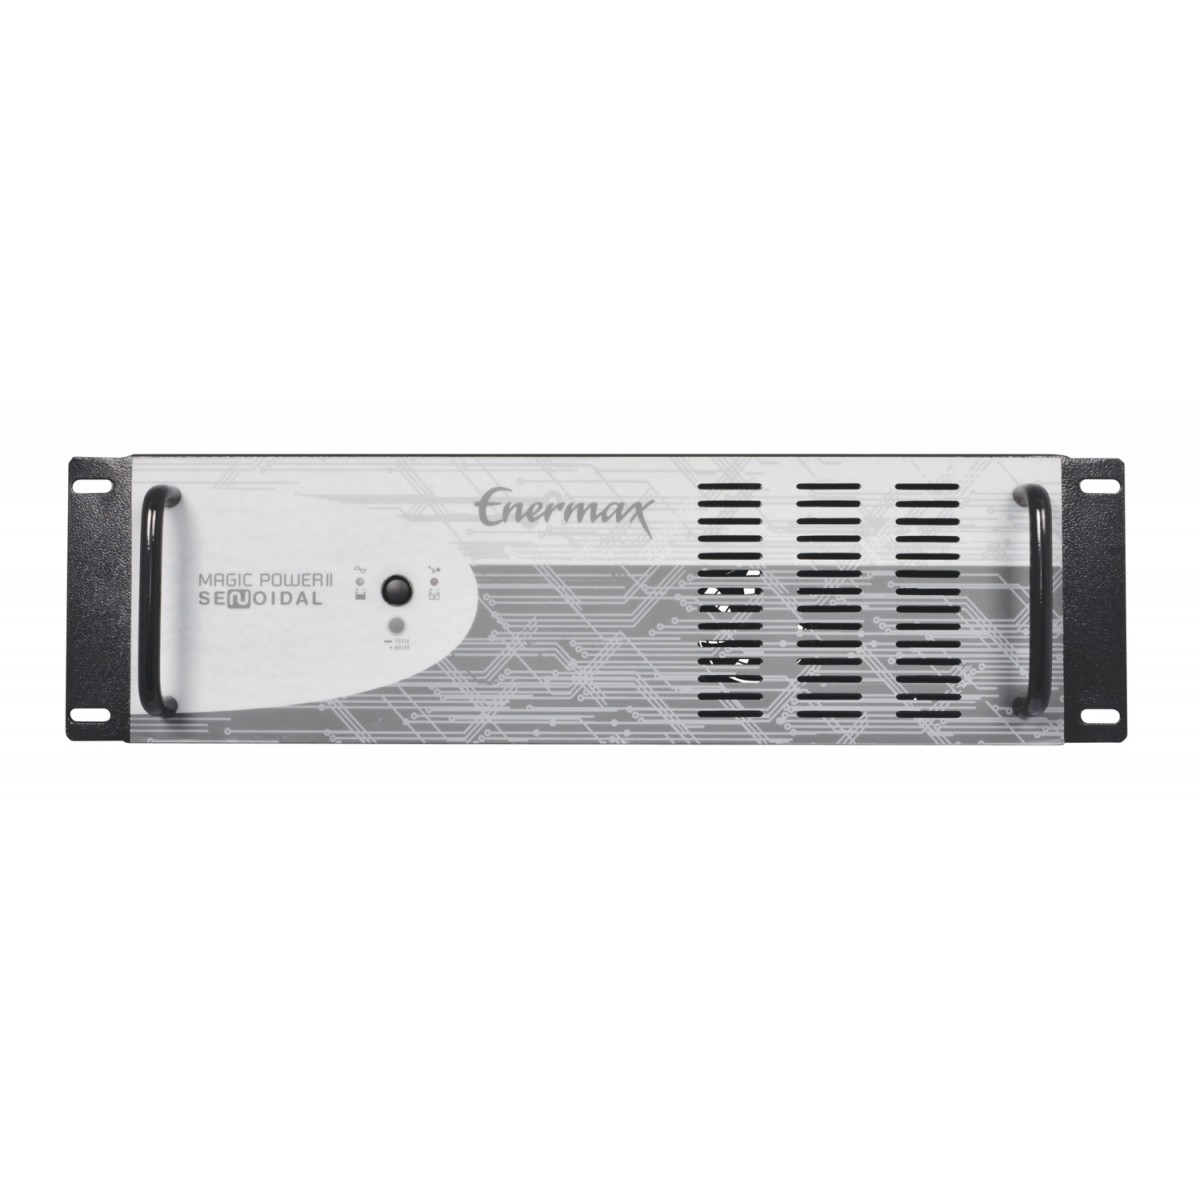 Nobreak Senoidal Magic Power II Enermax 800va Bivolt Automático S. 115v Rack USB